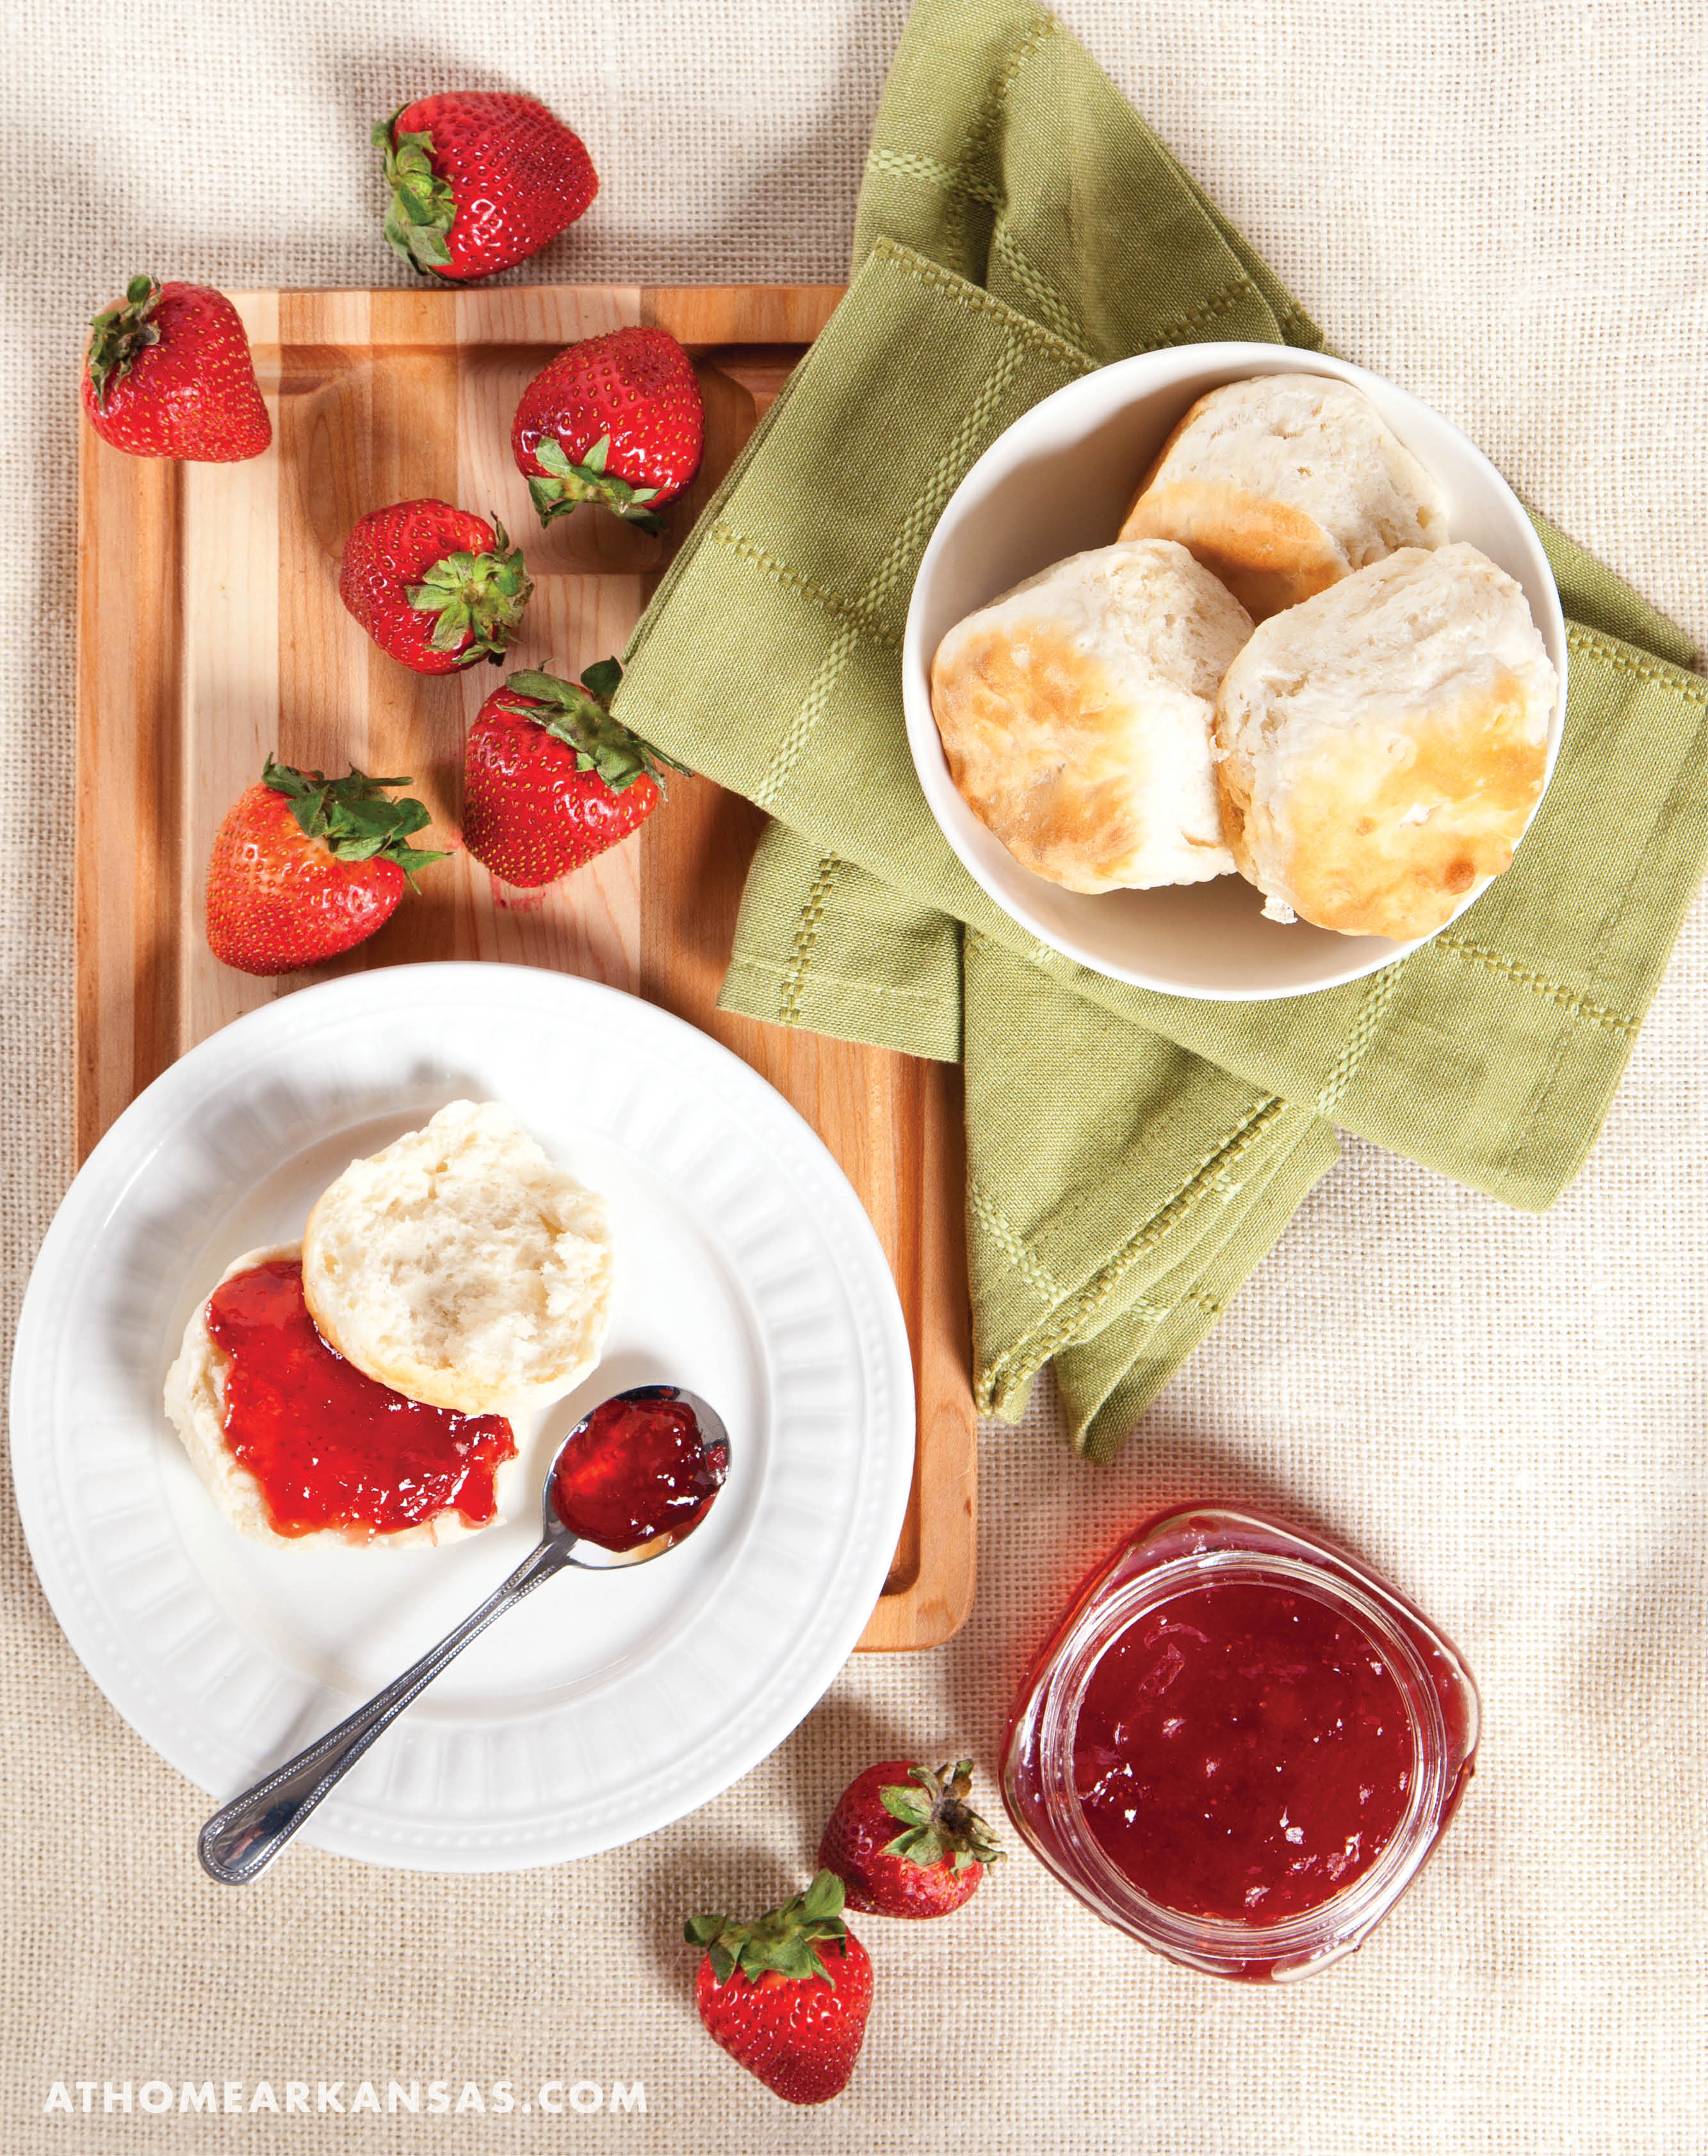 The Sweetness of Strawberries | At Home in Arkansas | May 2016